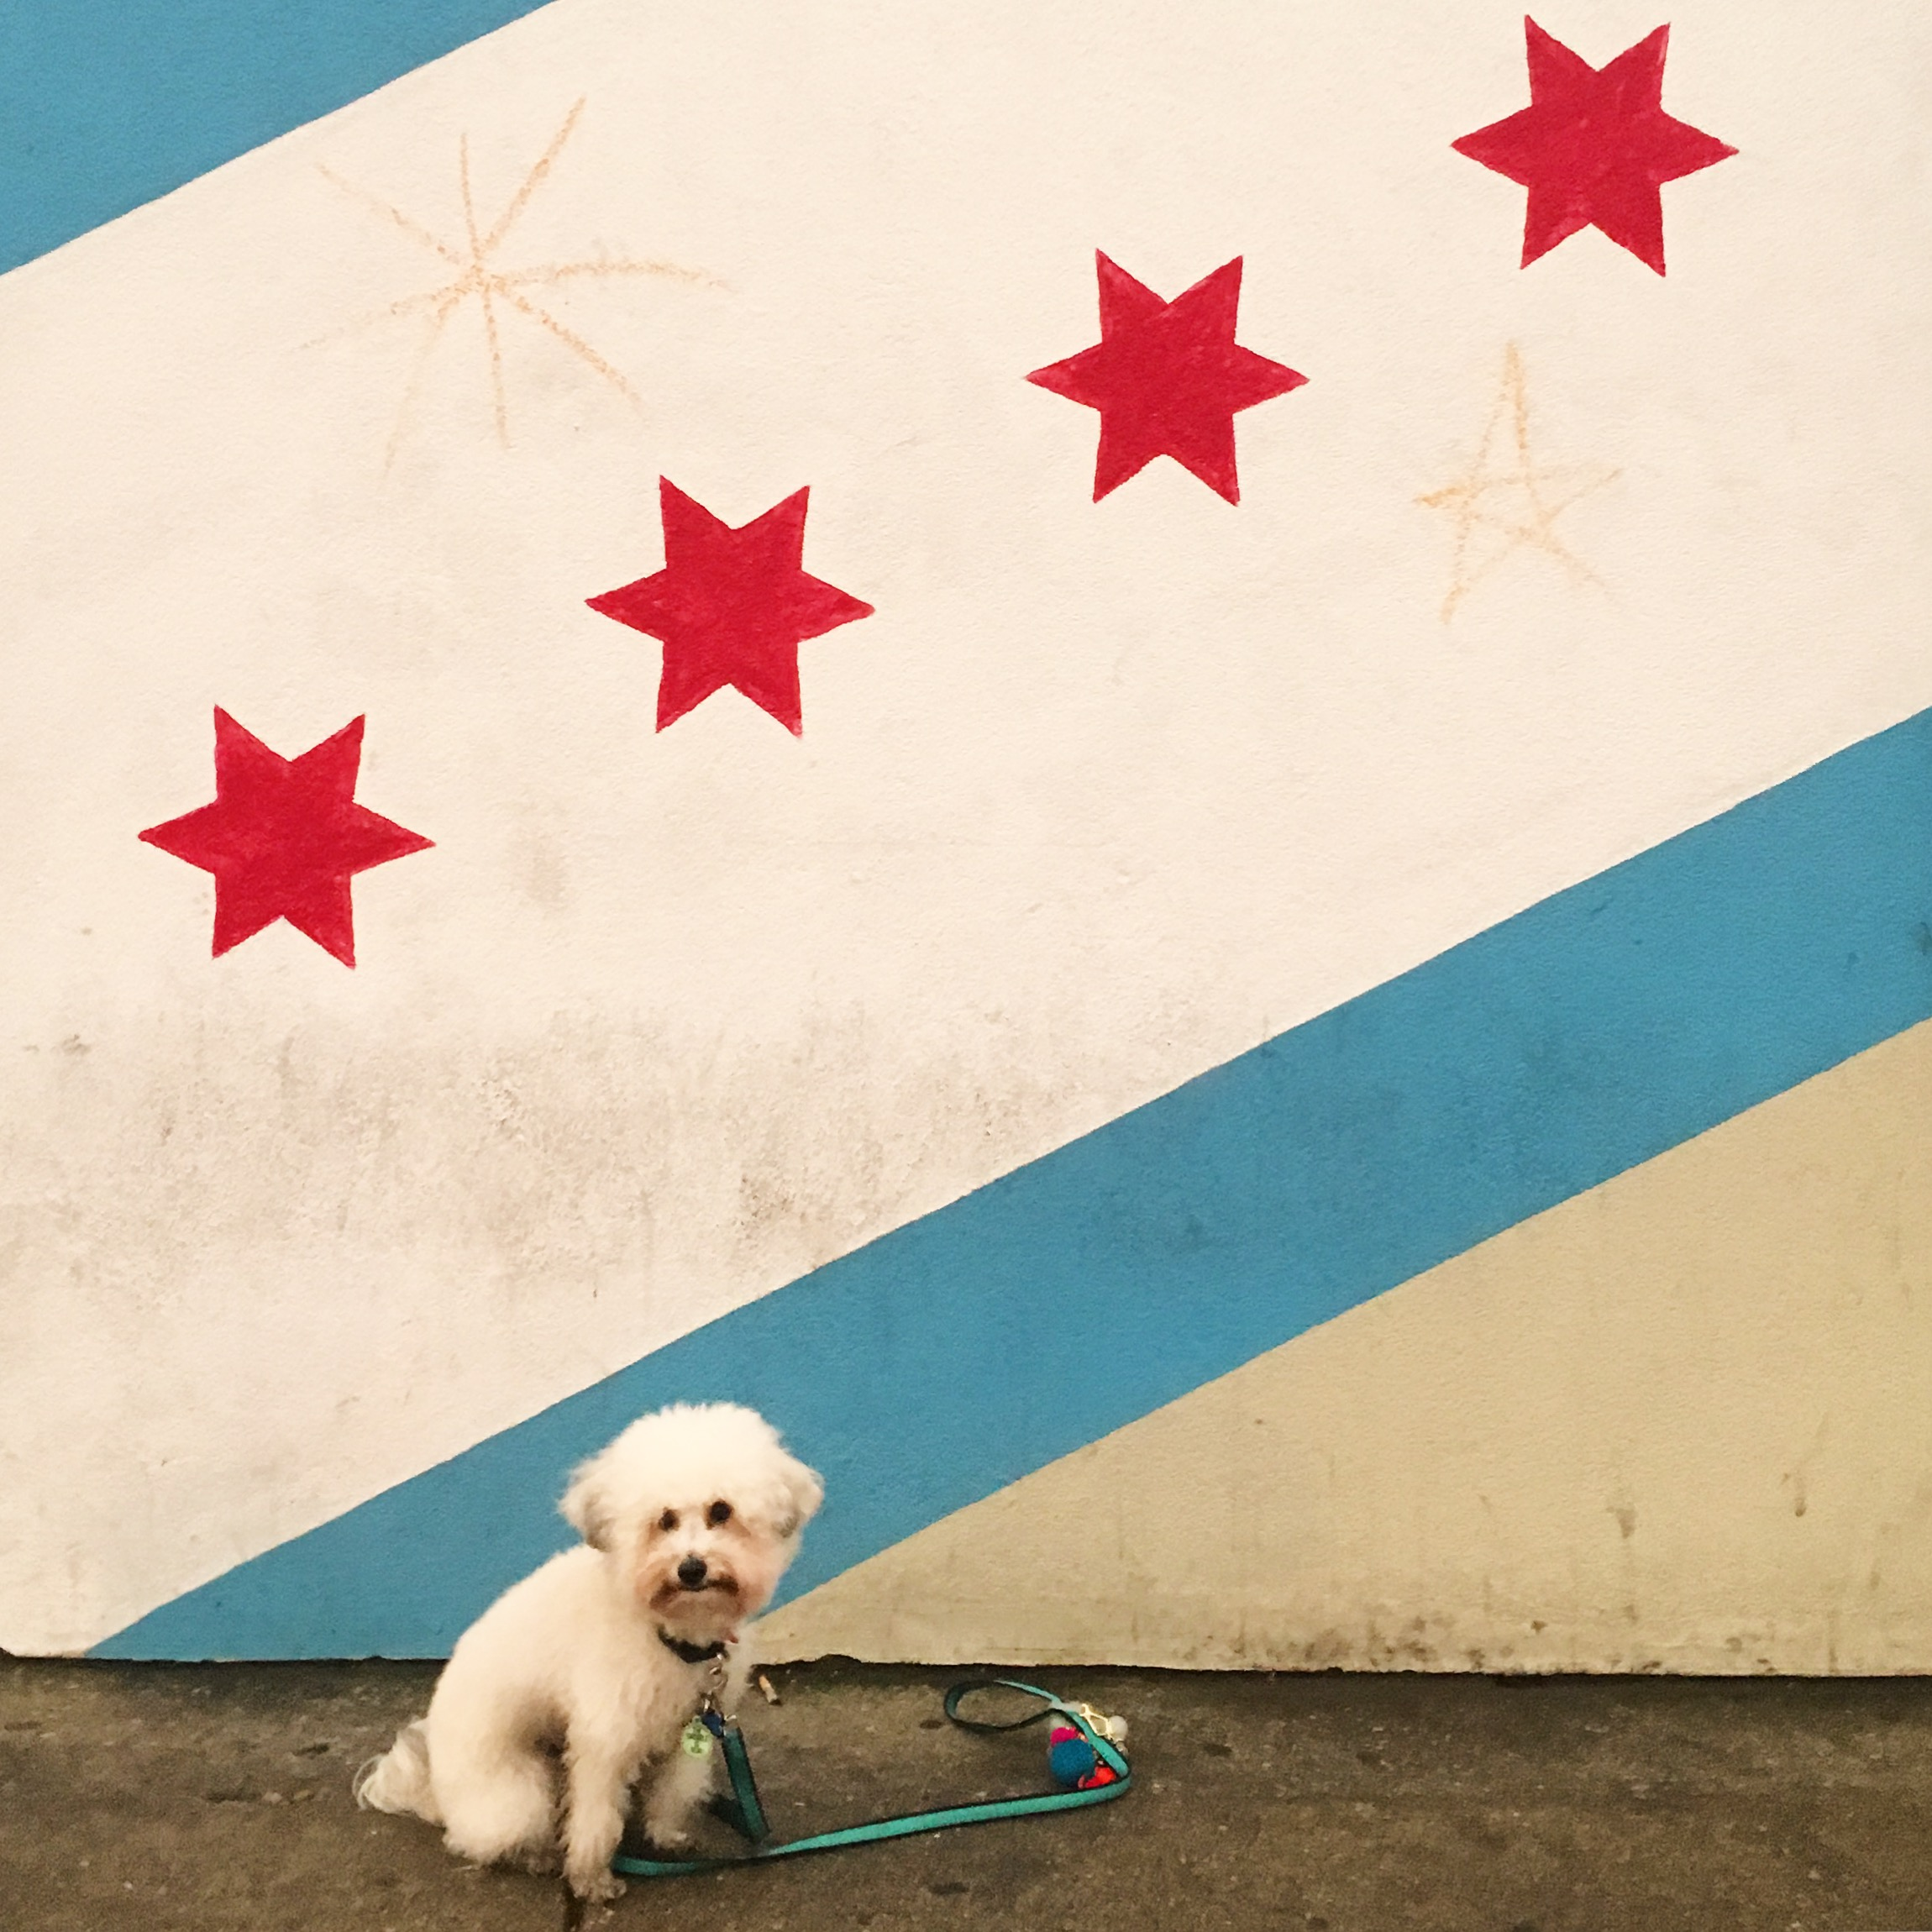 Chicago flag mural in Chicago, IL | Watson & Walls